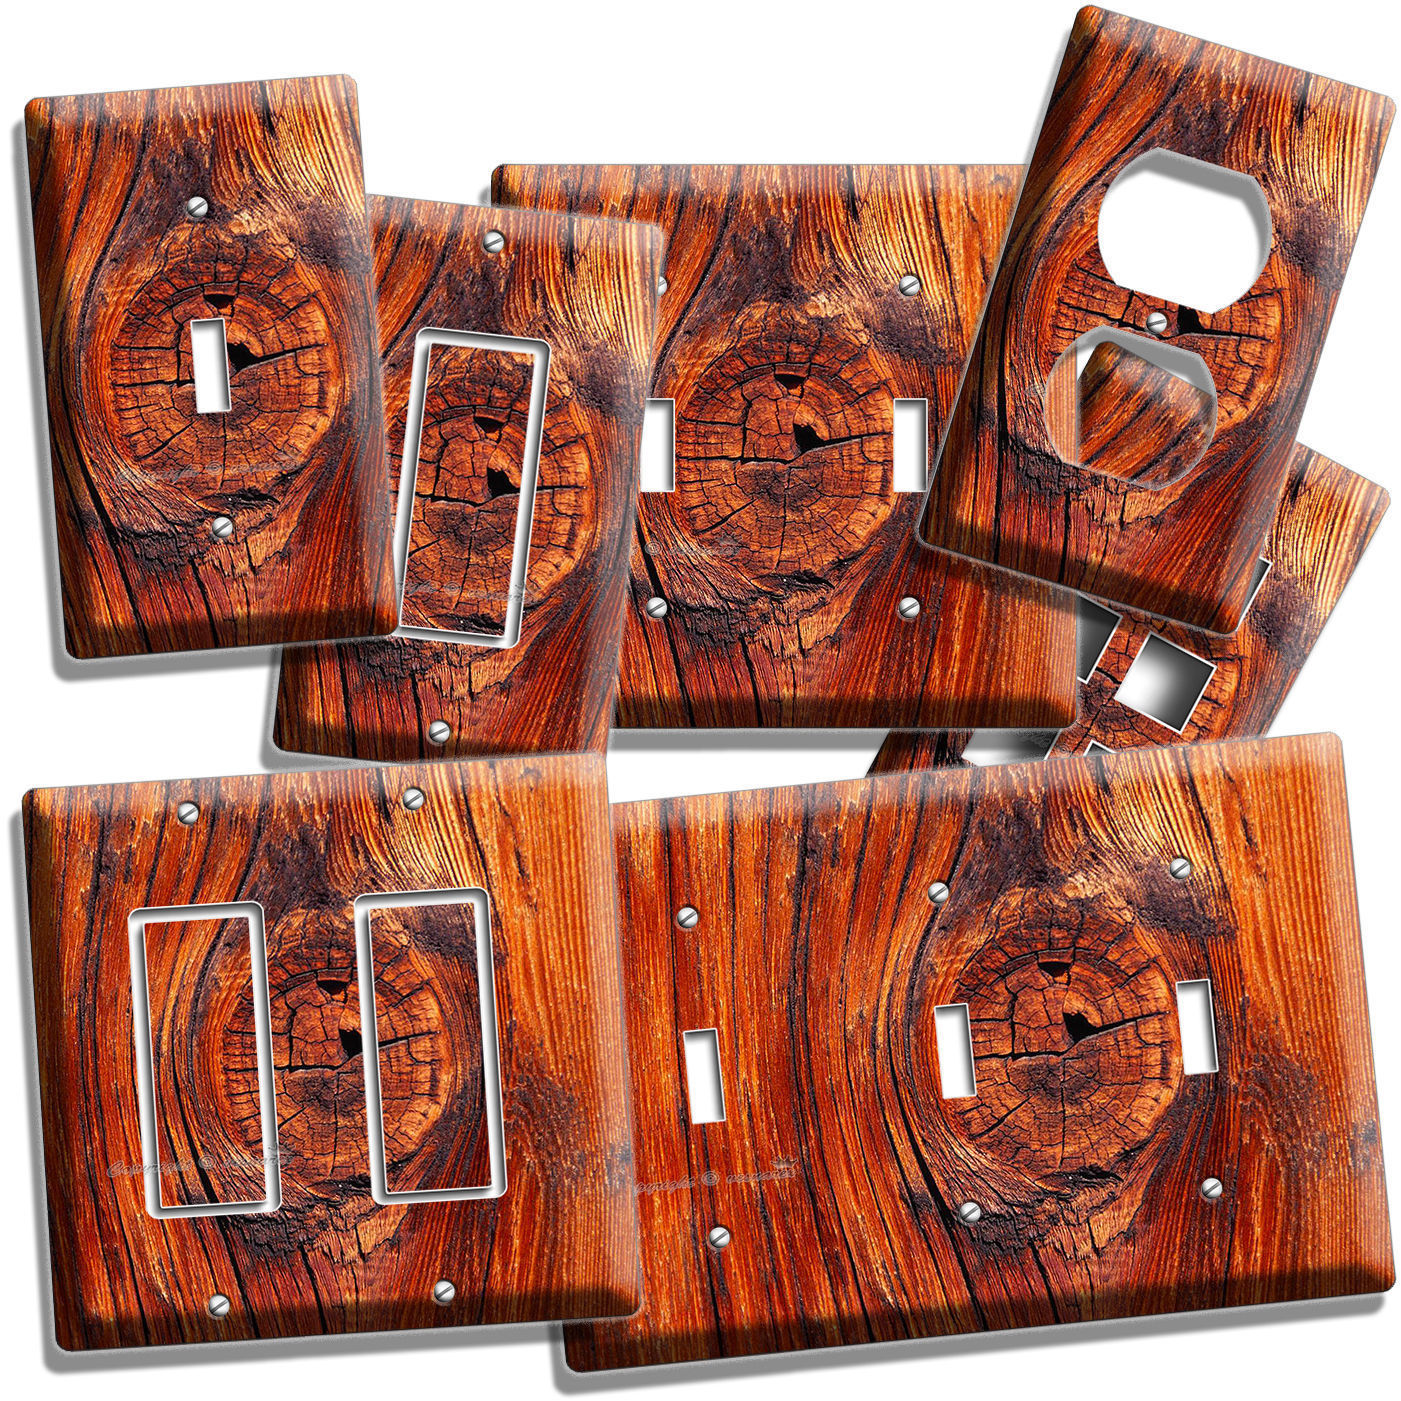 Rusted Old Wood Eye Rustic Light Switch Wall Plate Outlet